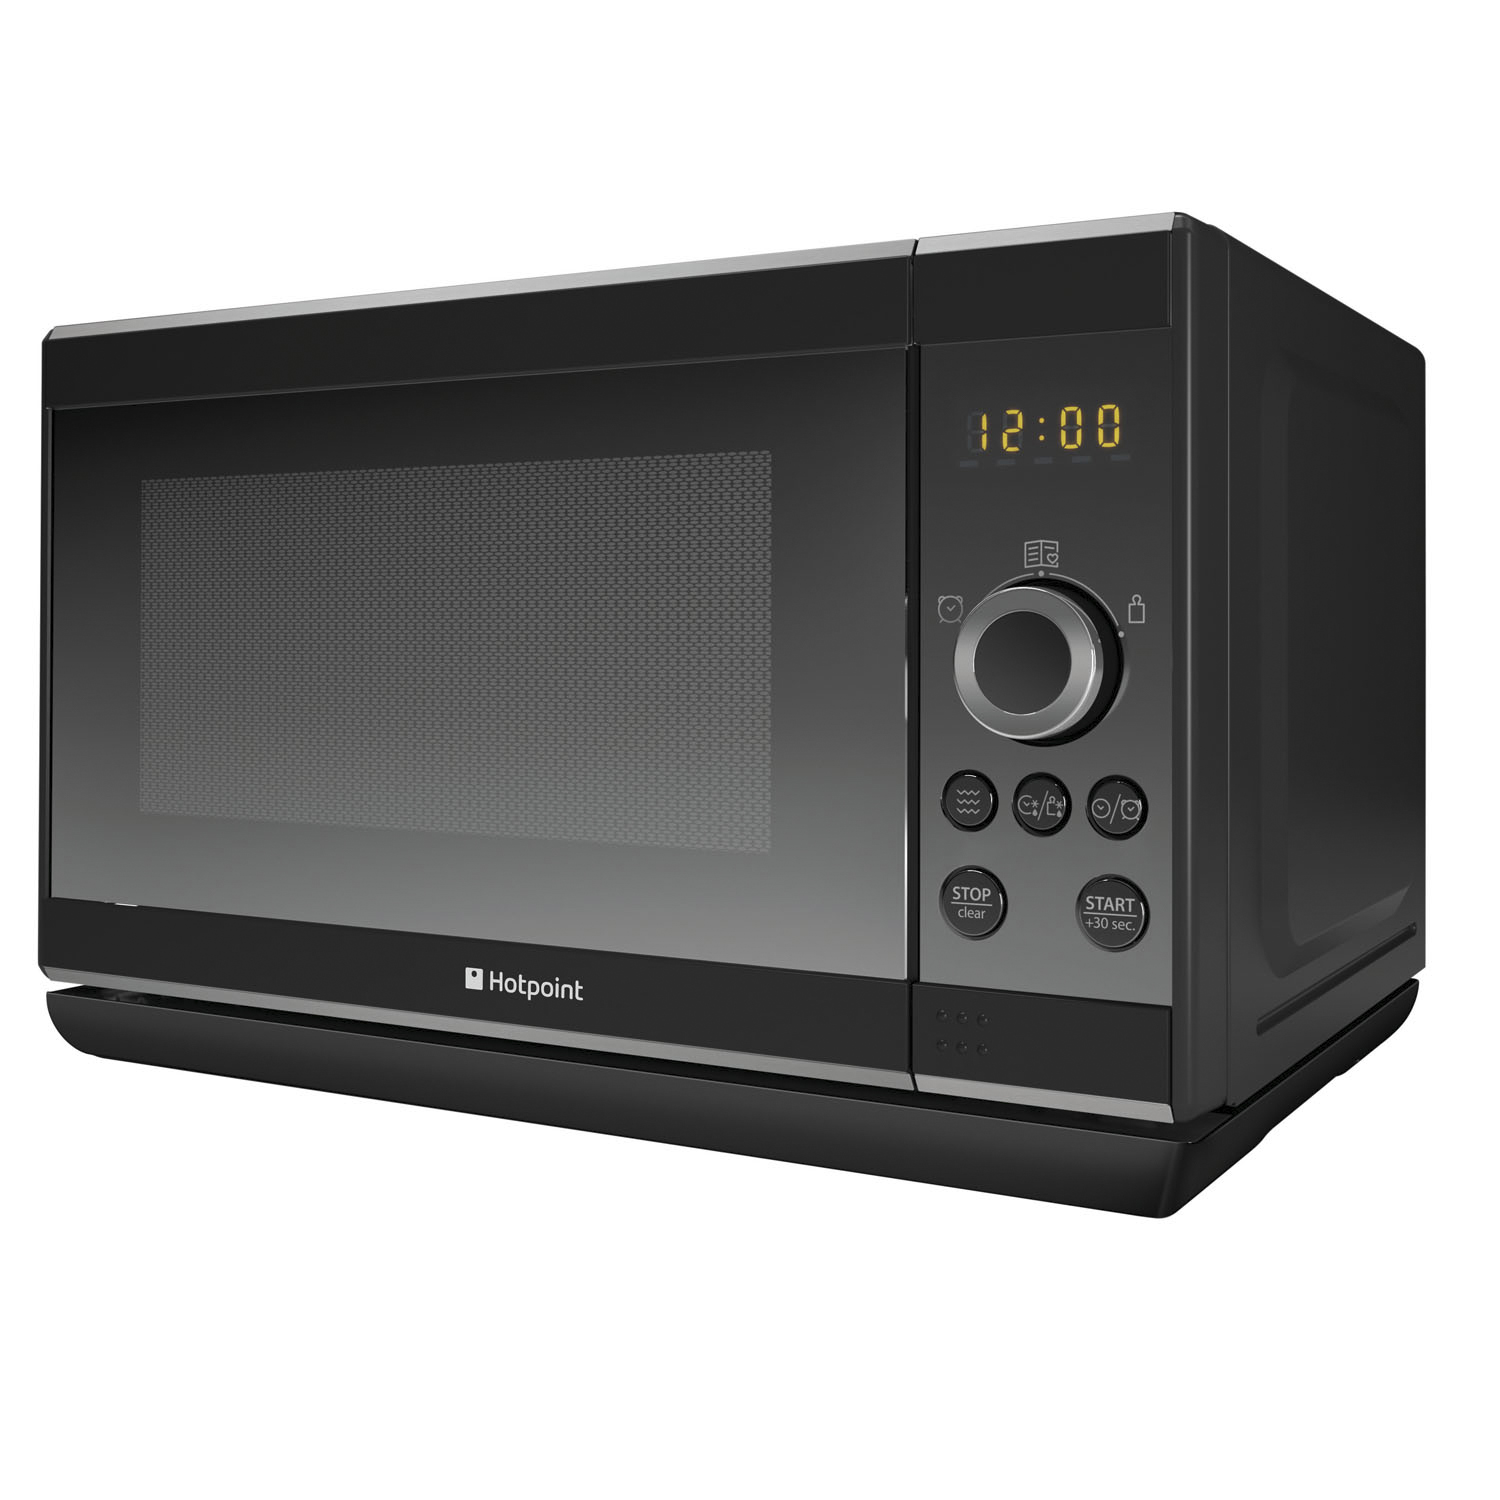 Hotpoint Countertop Microwave : Hotpoint Microwave MWH 2021 B UK Up to 800 W - Black